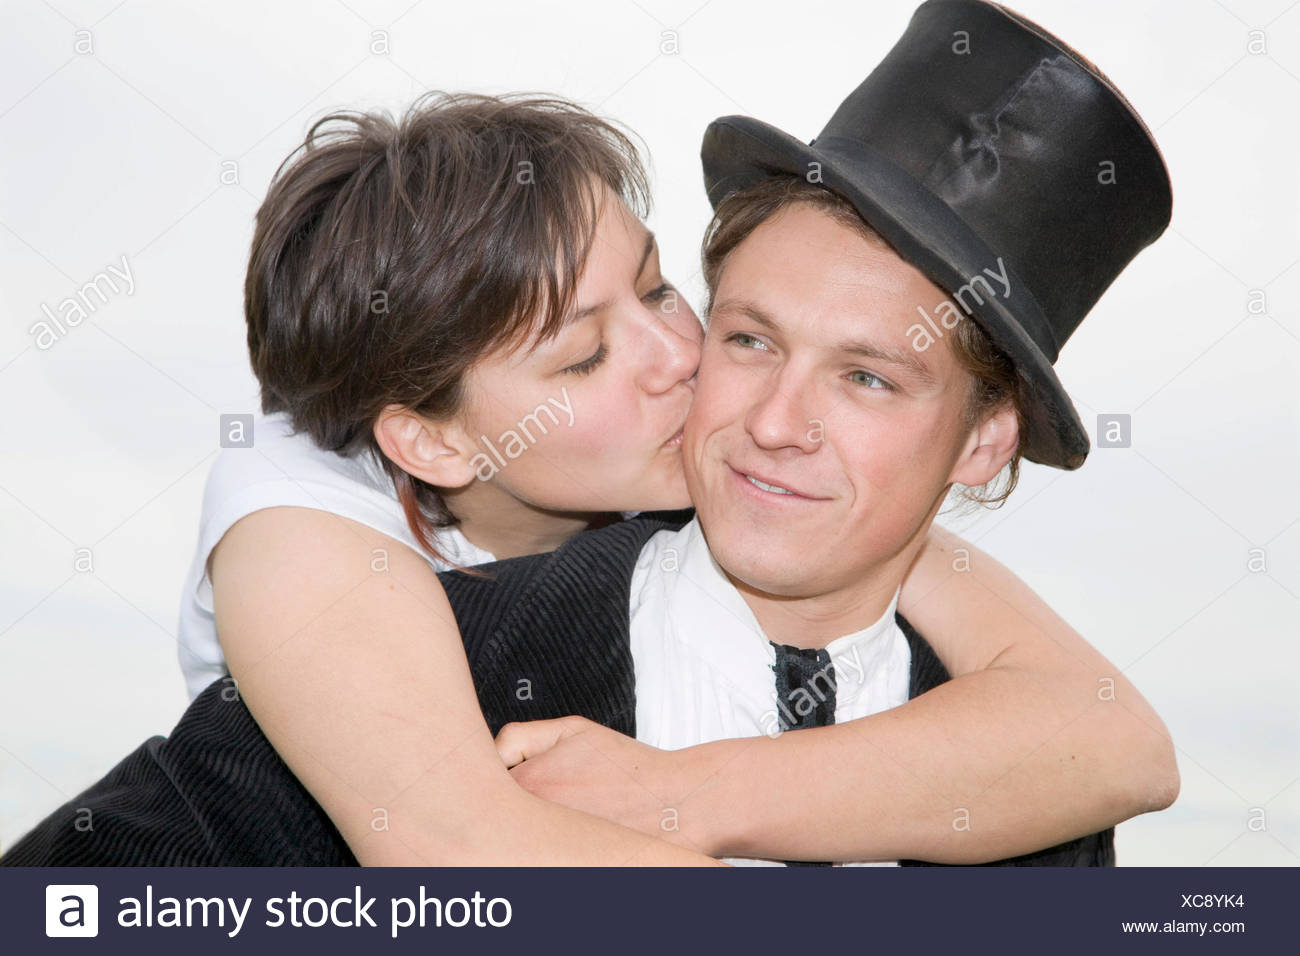 Young man wearing a top hat being tenderly kissed by his partner as he carries her piggyback - Stock Image